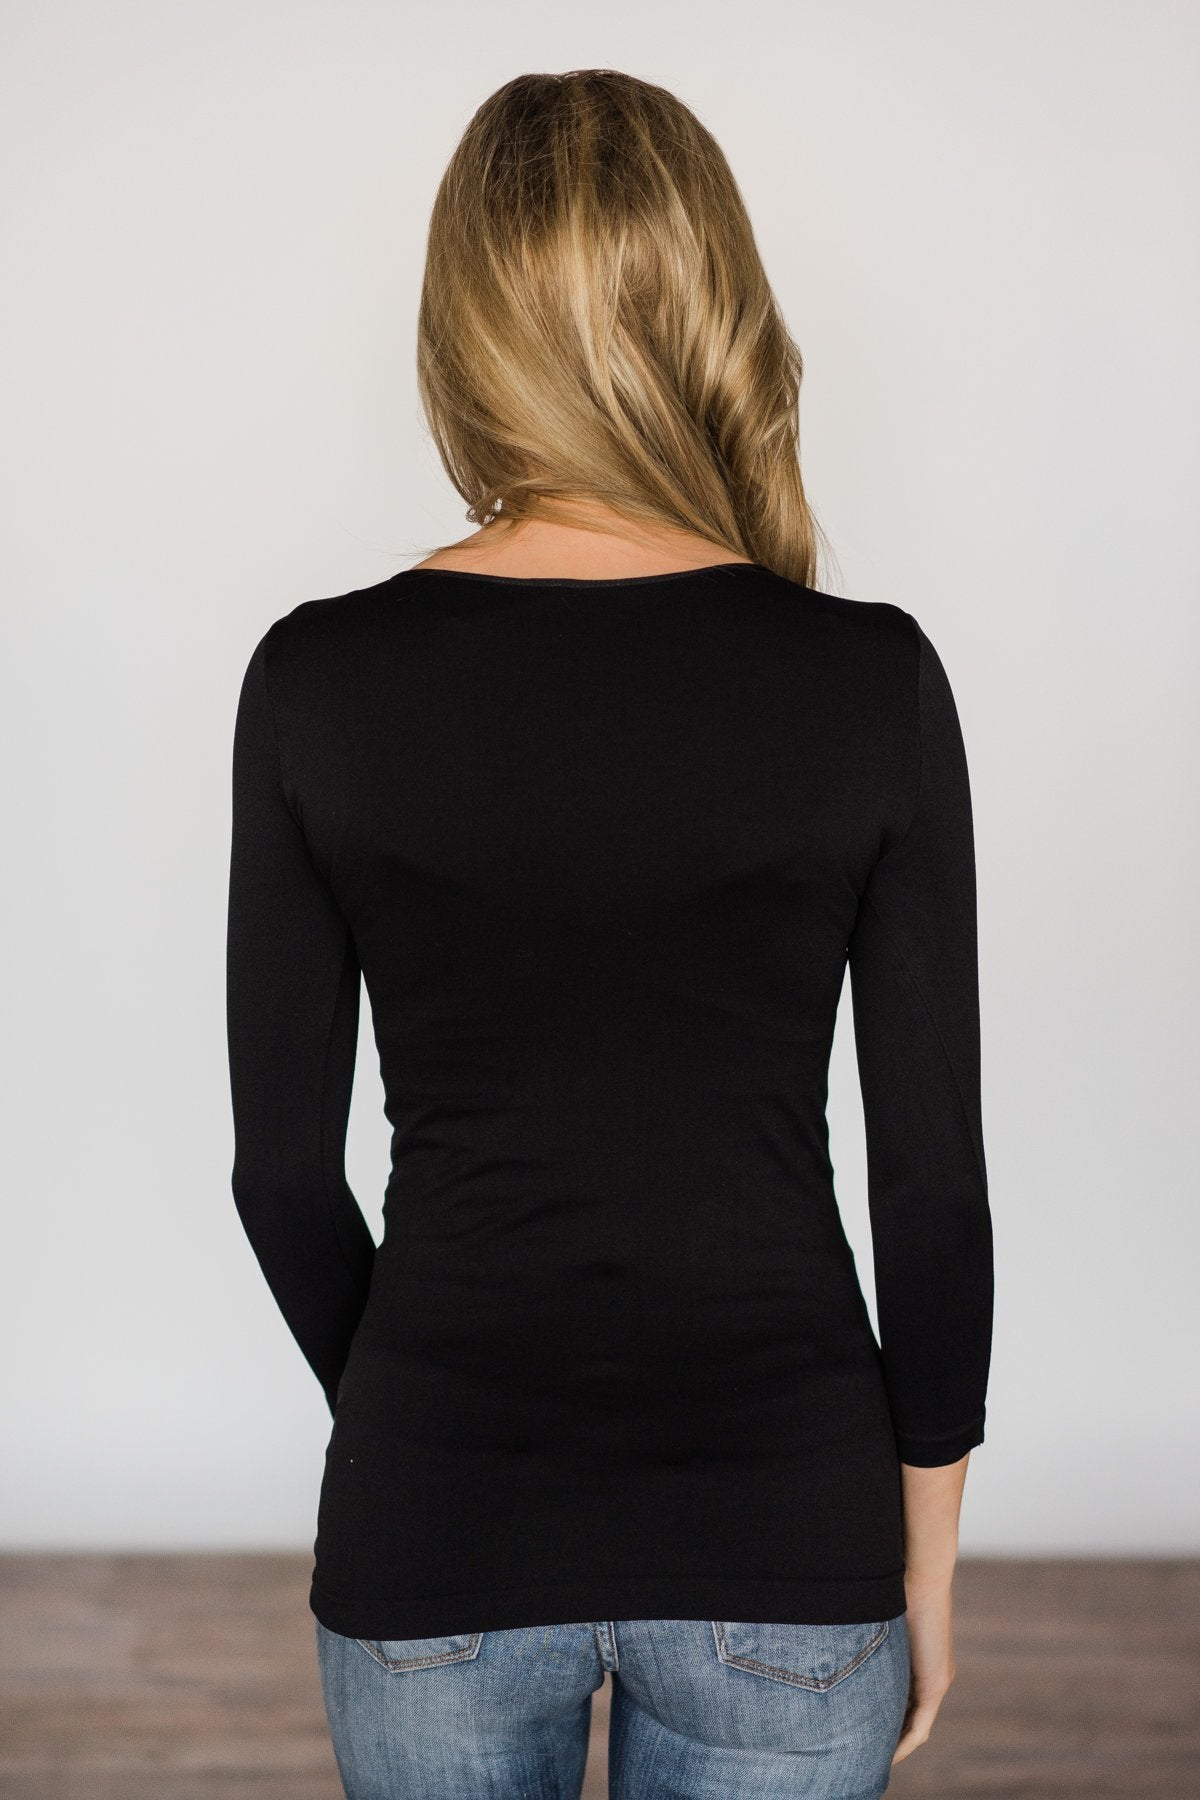 Basic Black Seamless 3/4 Sleeve Top